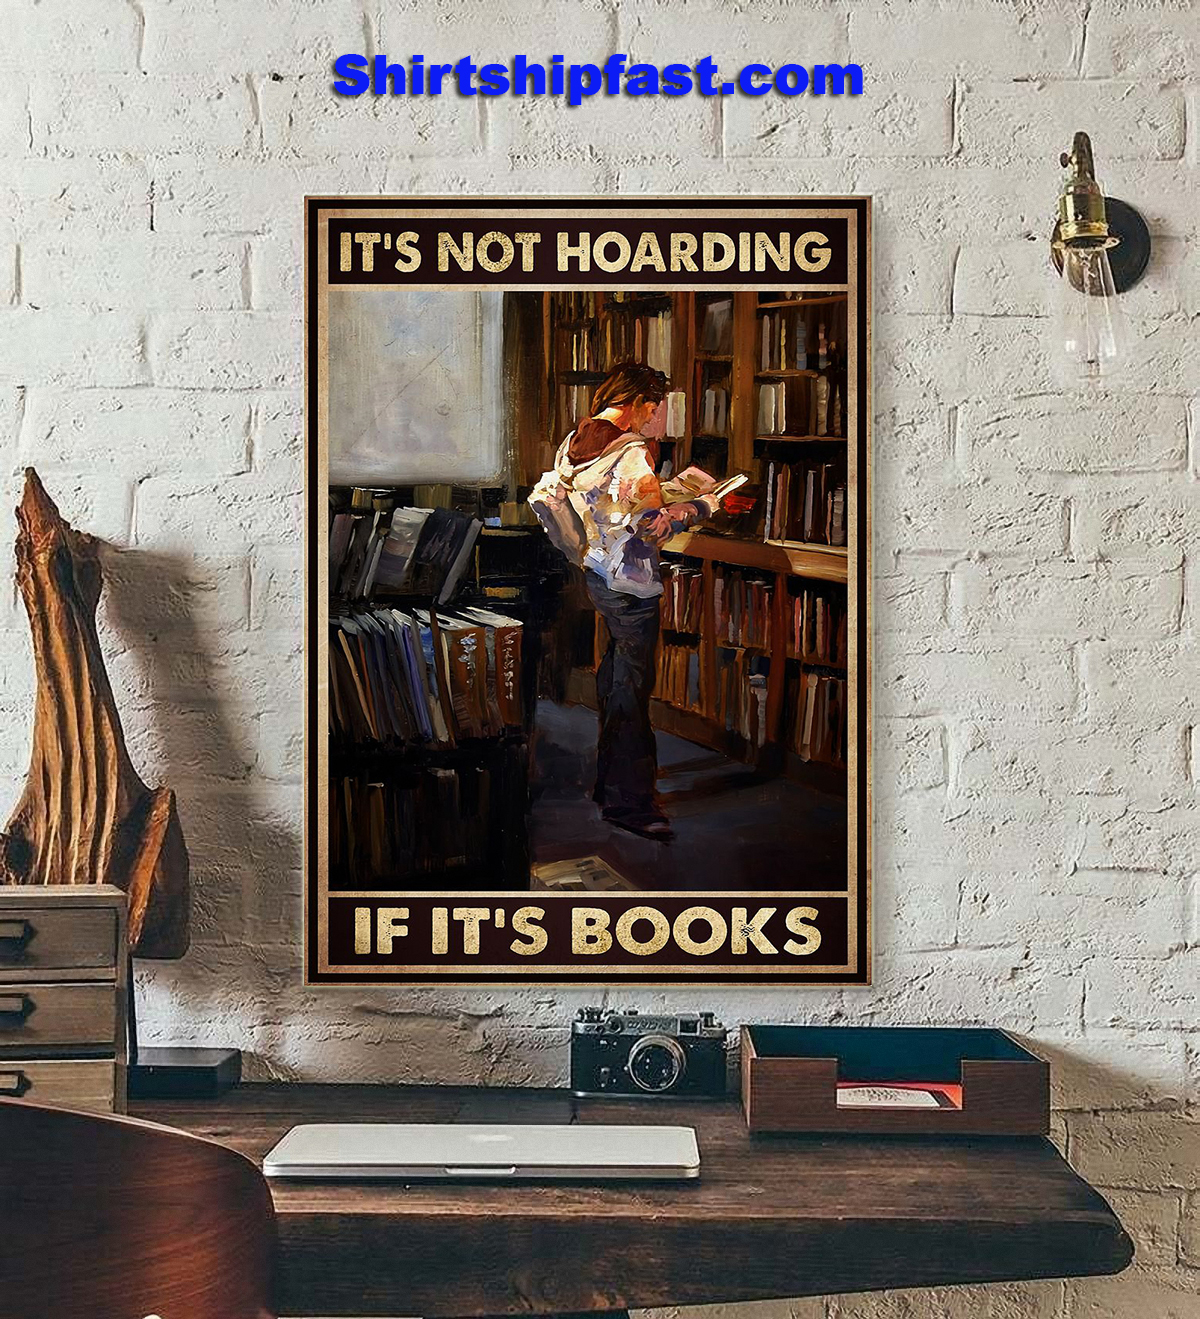 It's not hoarding if it's books poster - Picture 3